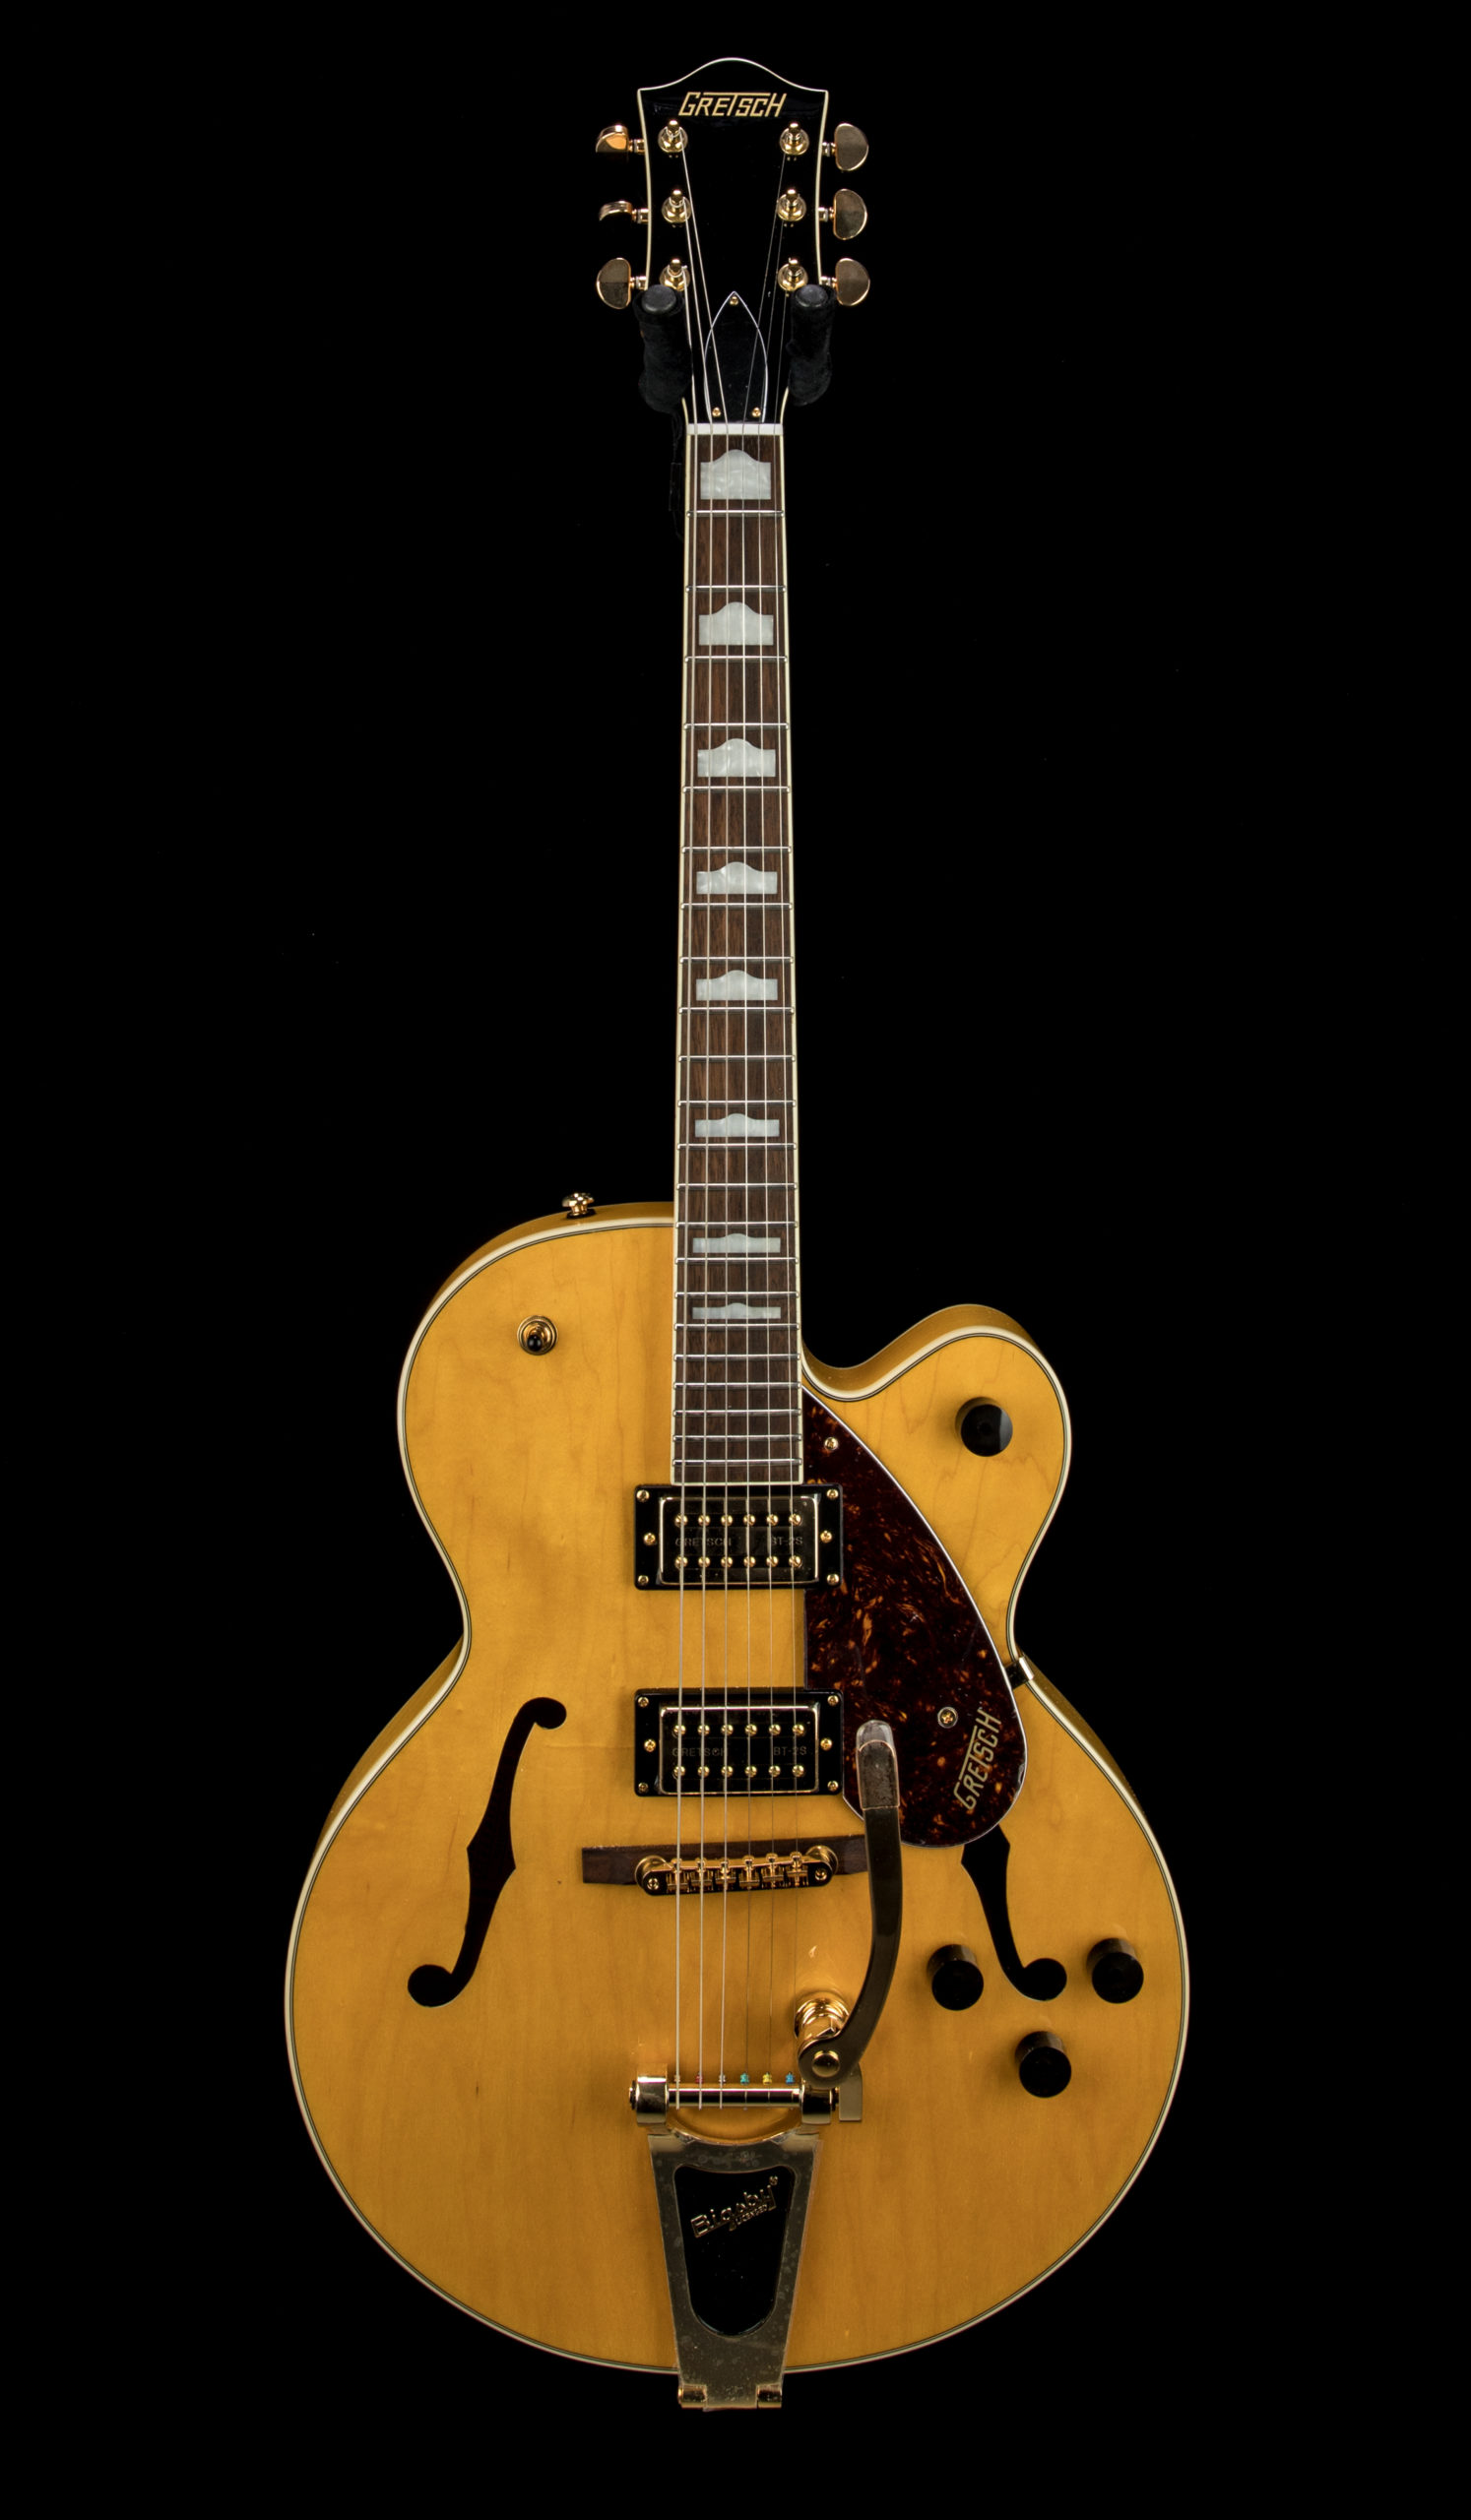 Gretsch G2410TG #IS201218708 Front